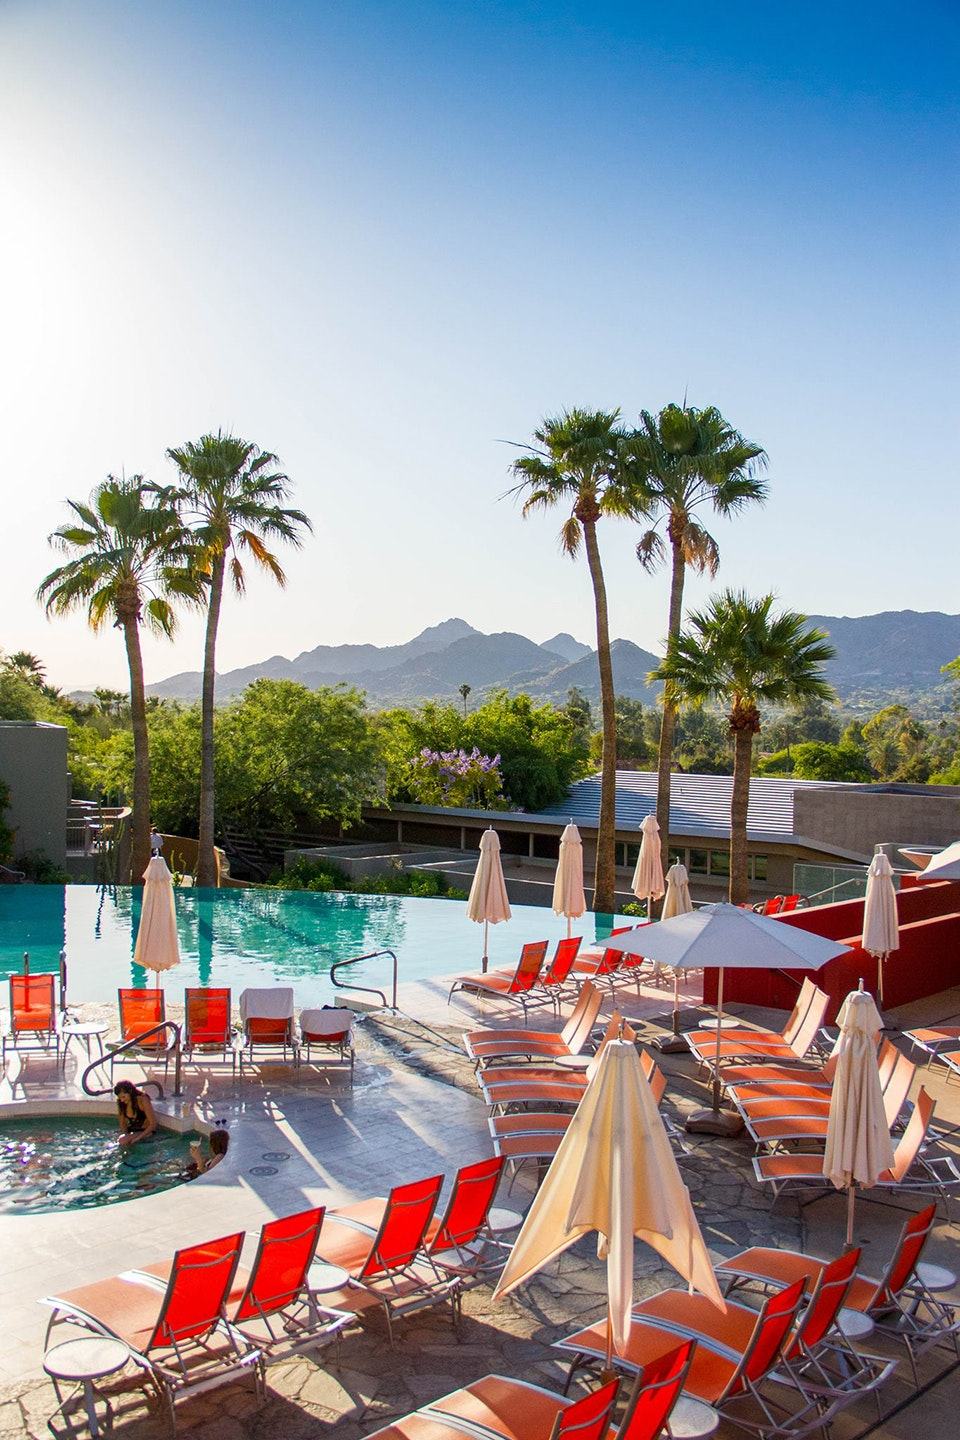 Camelback Mountain Resort and Spa in Scottsdale